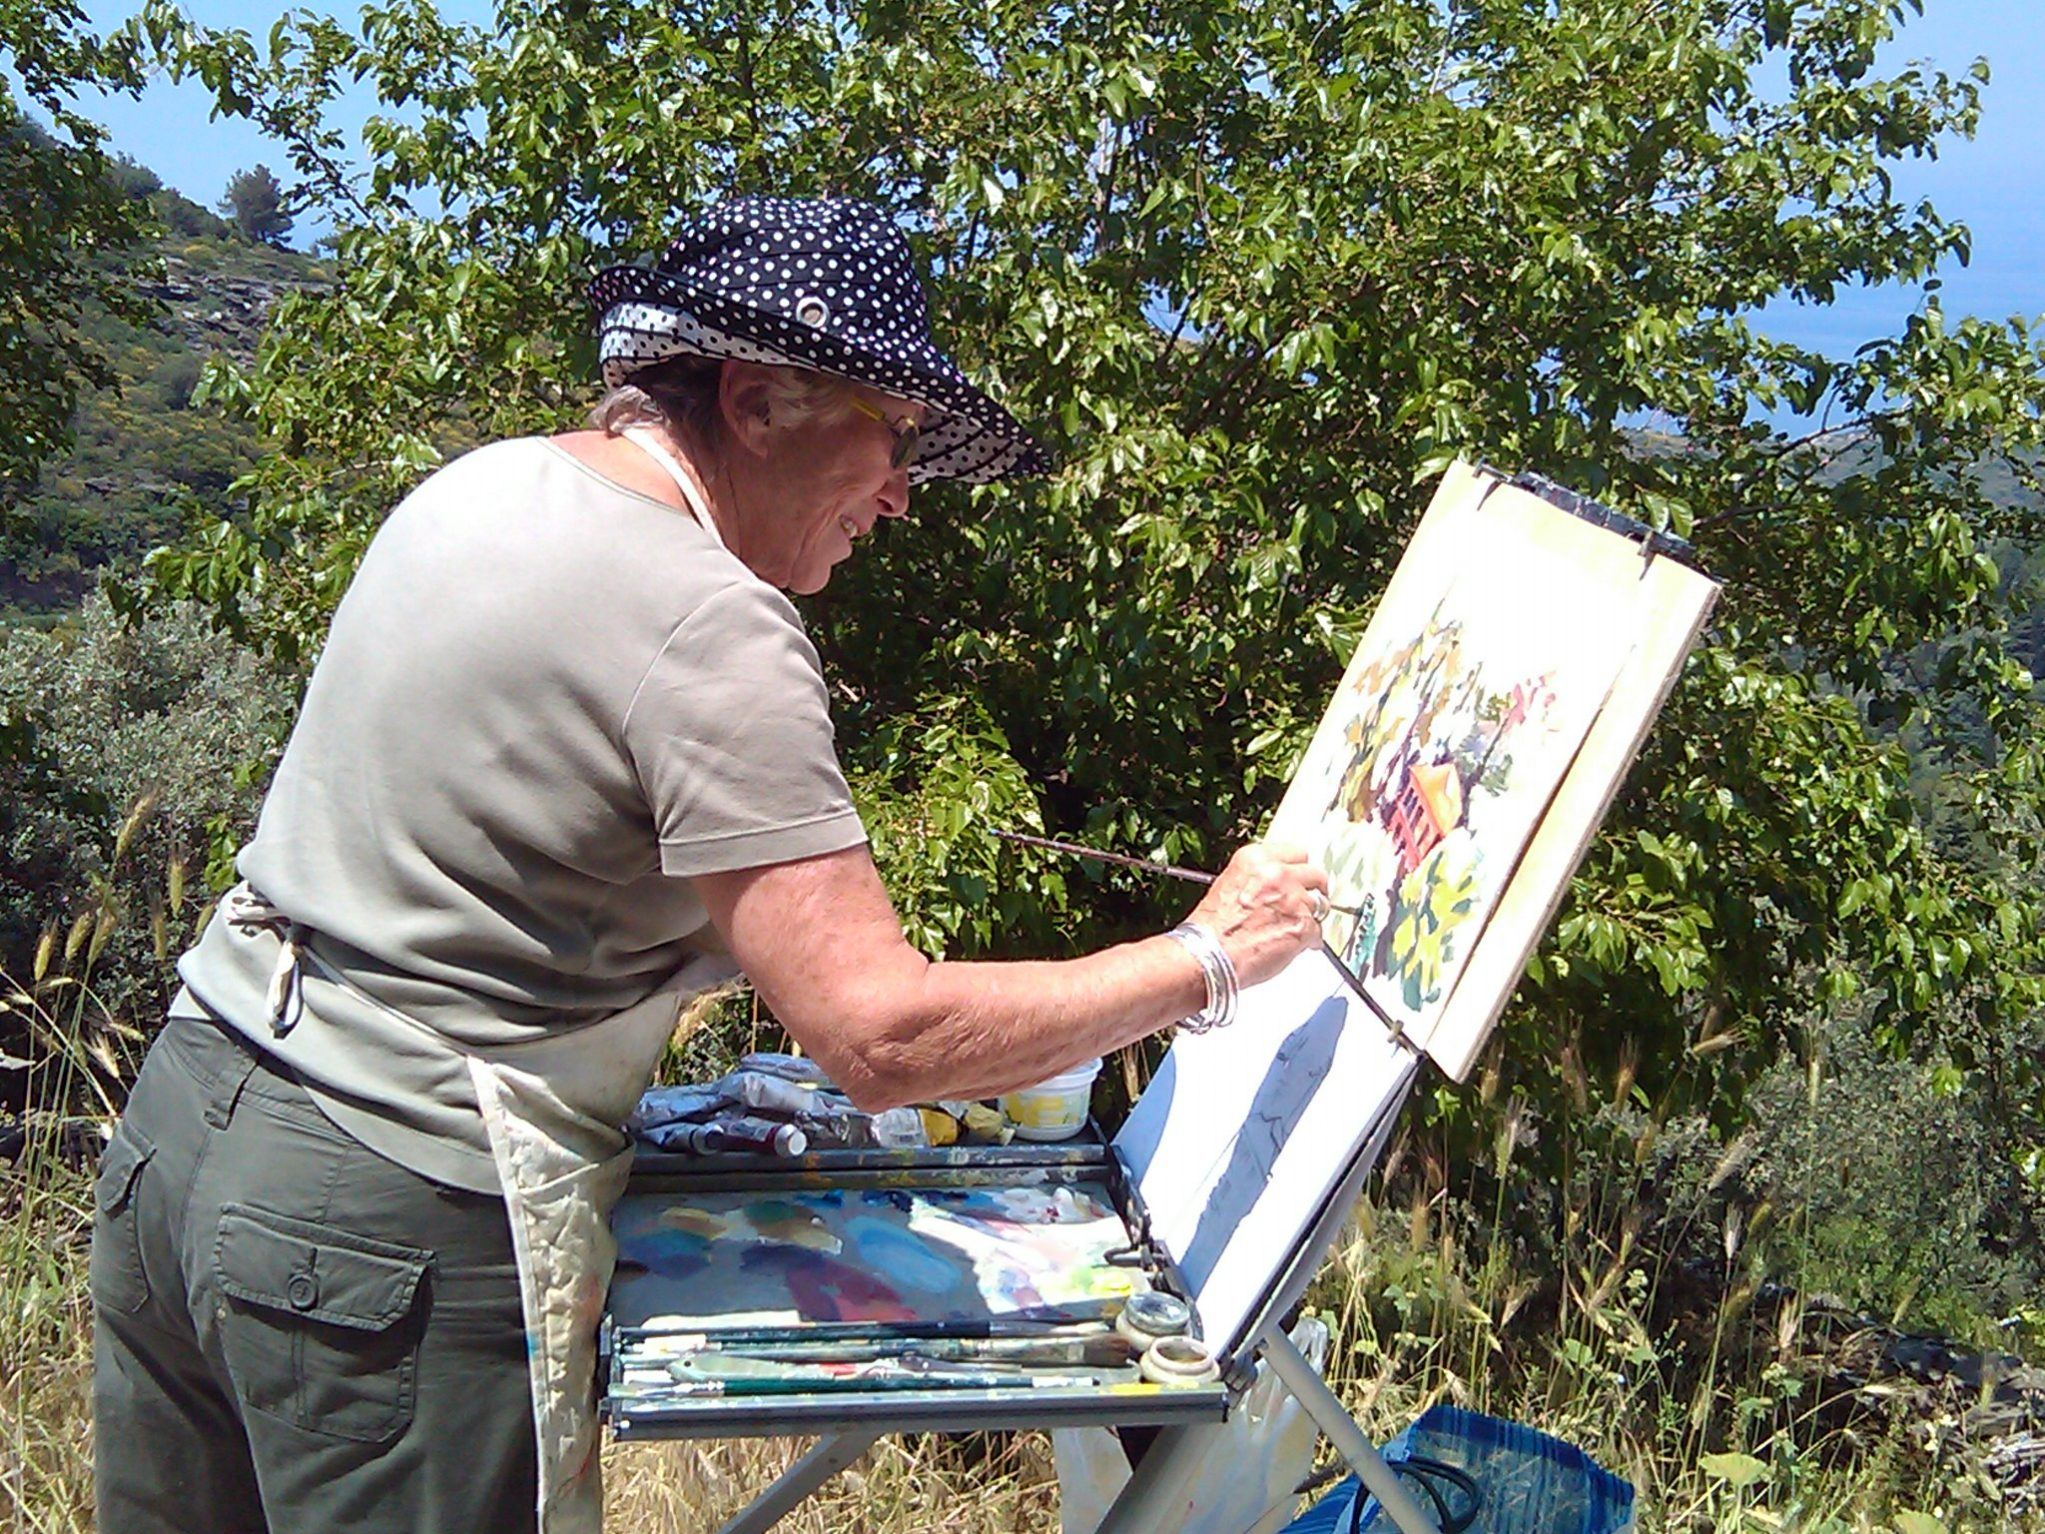 painting courses, Ikaria